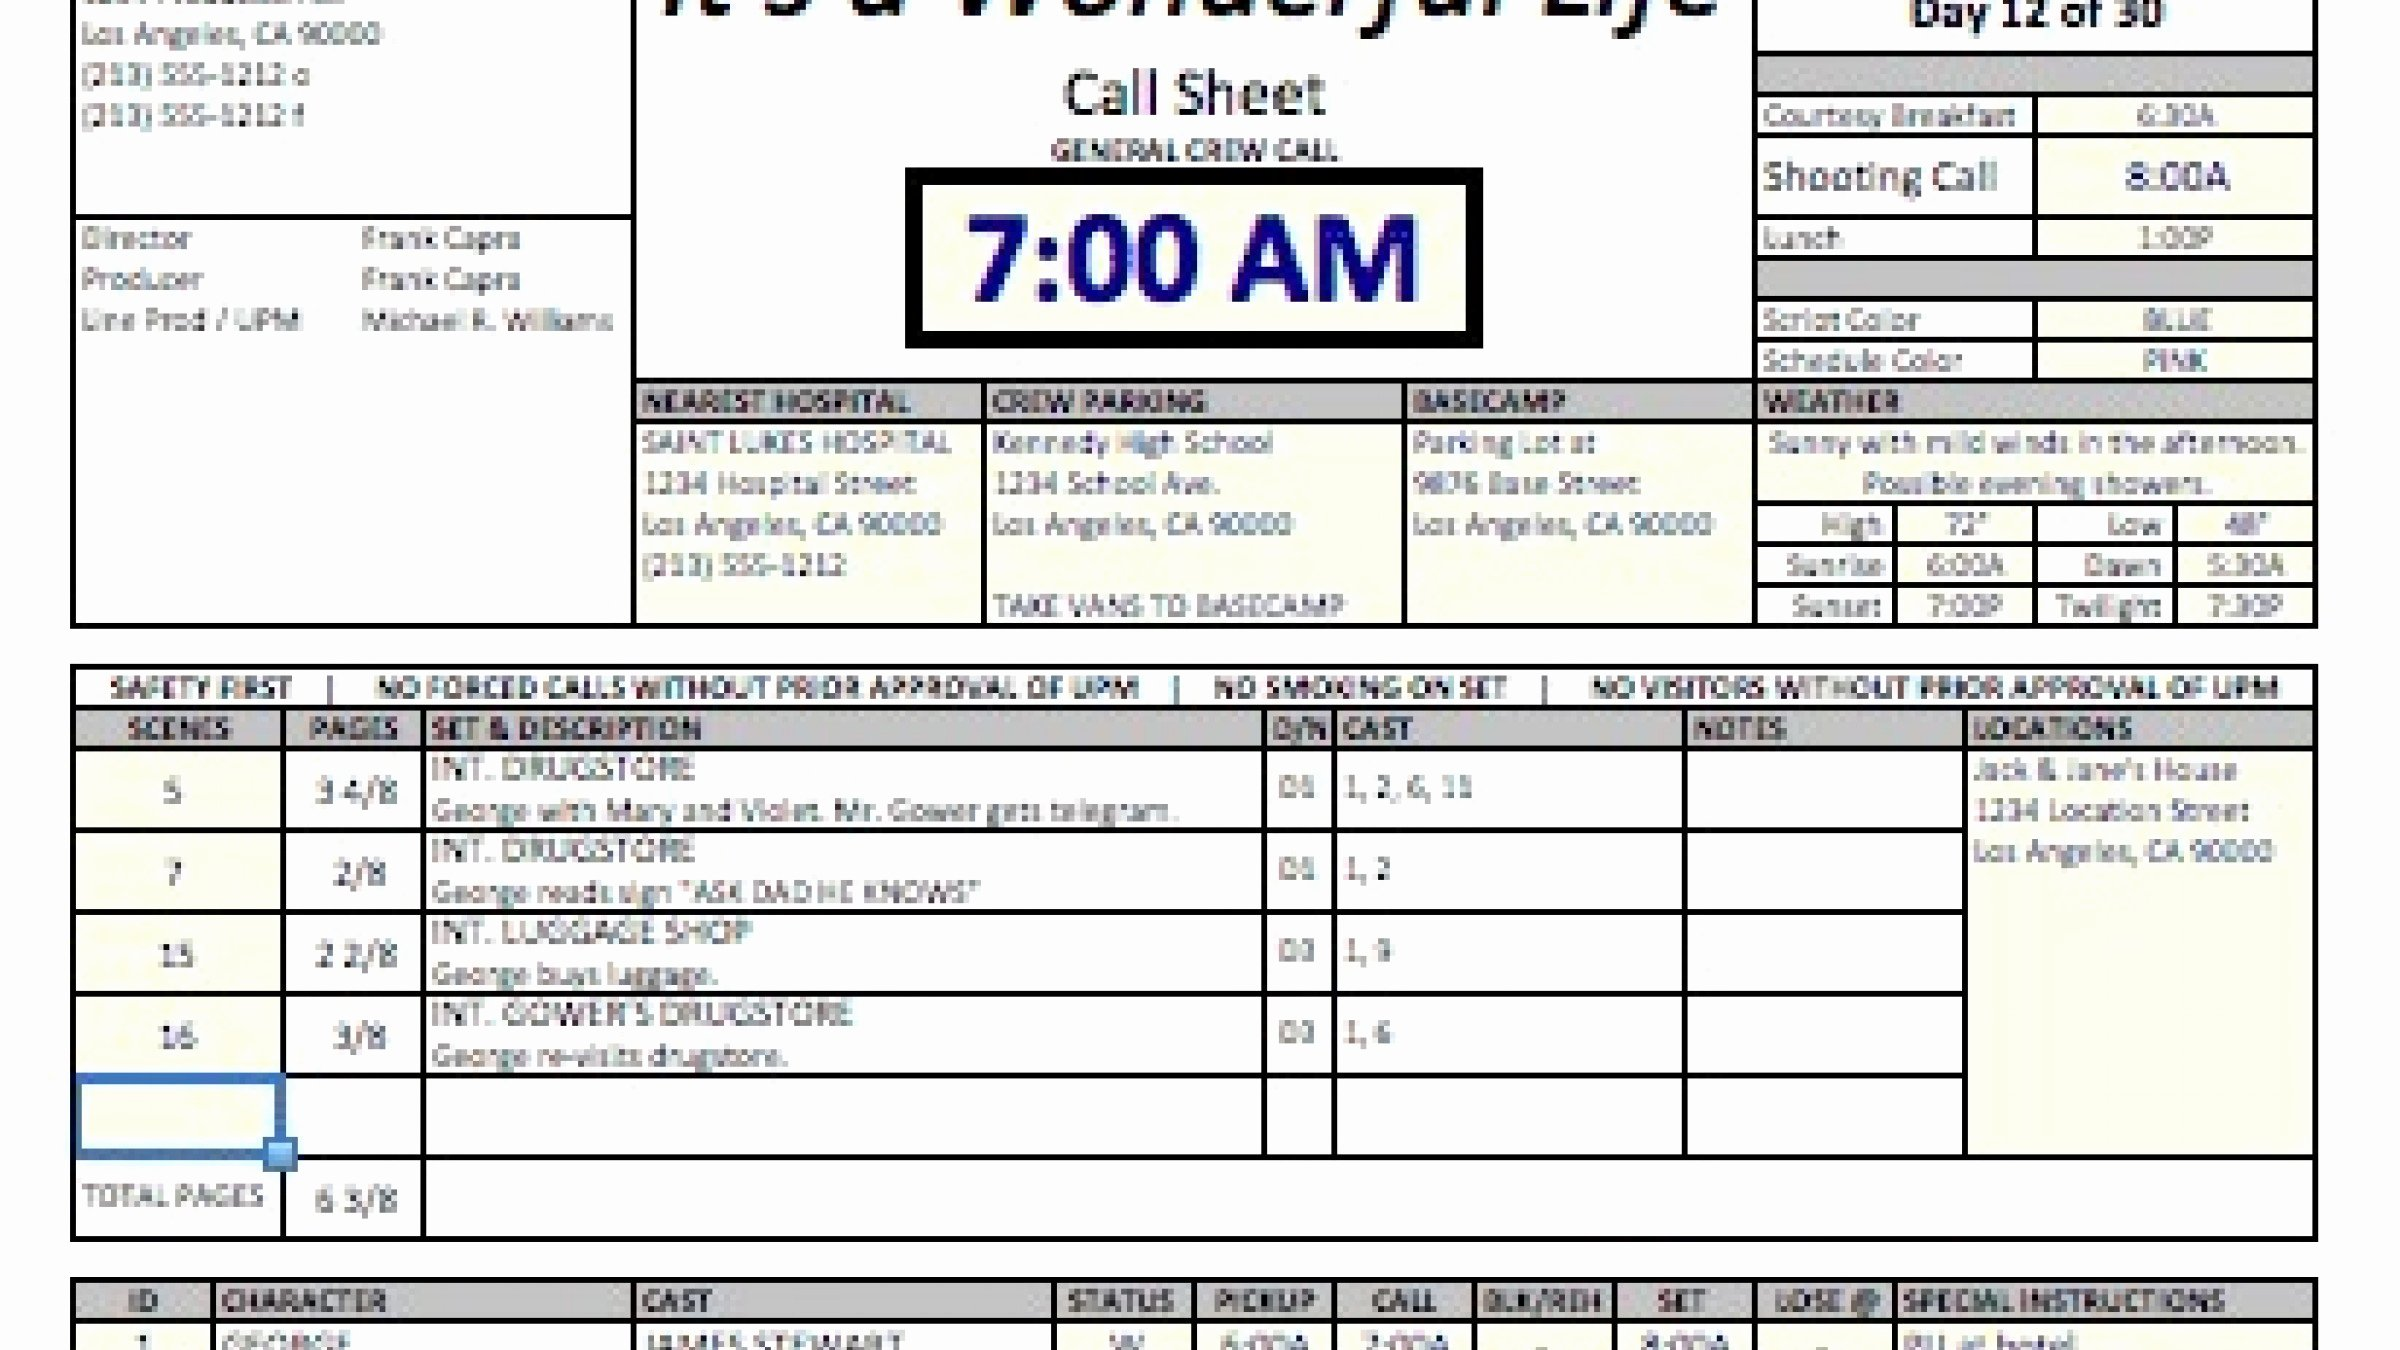 Call Sheet Samples Luxury Casper Spreadsheet Template Makes Call Sheets and